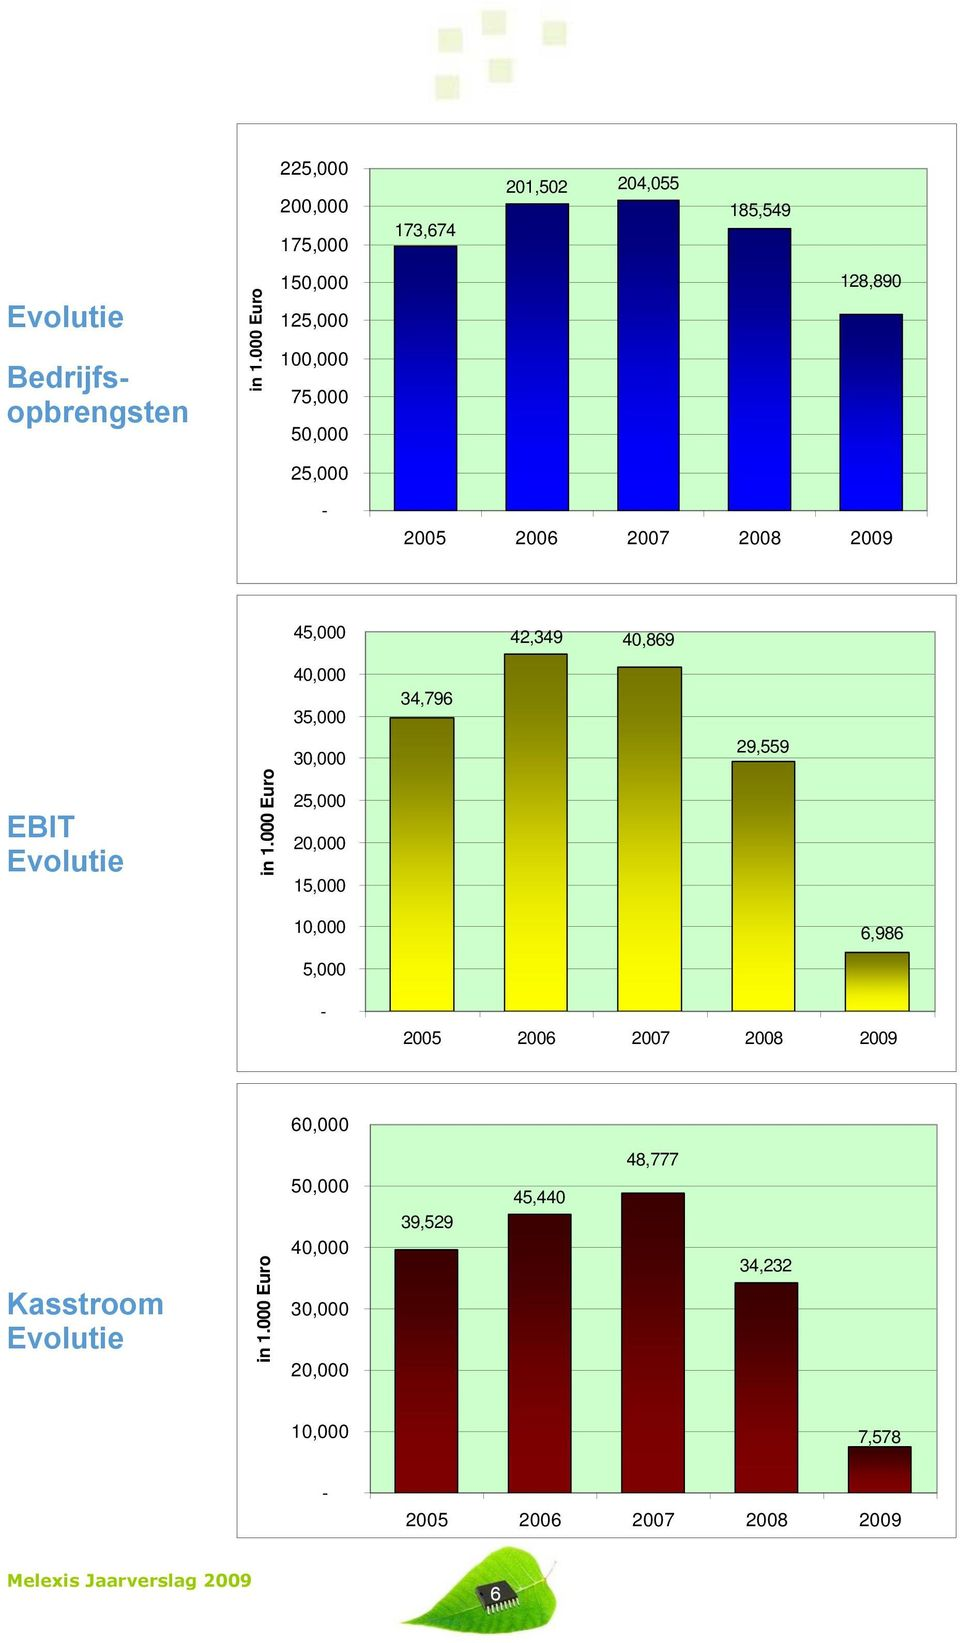 35,000 34,796 30,000 29,559 EBIT Evolutie in 1.